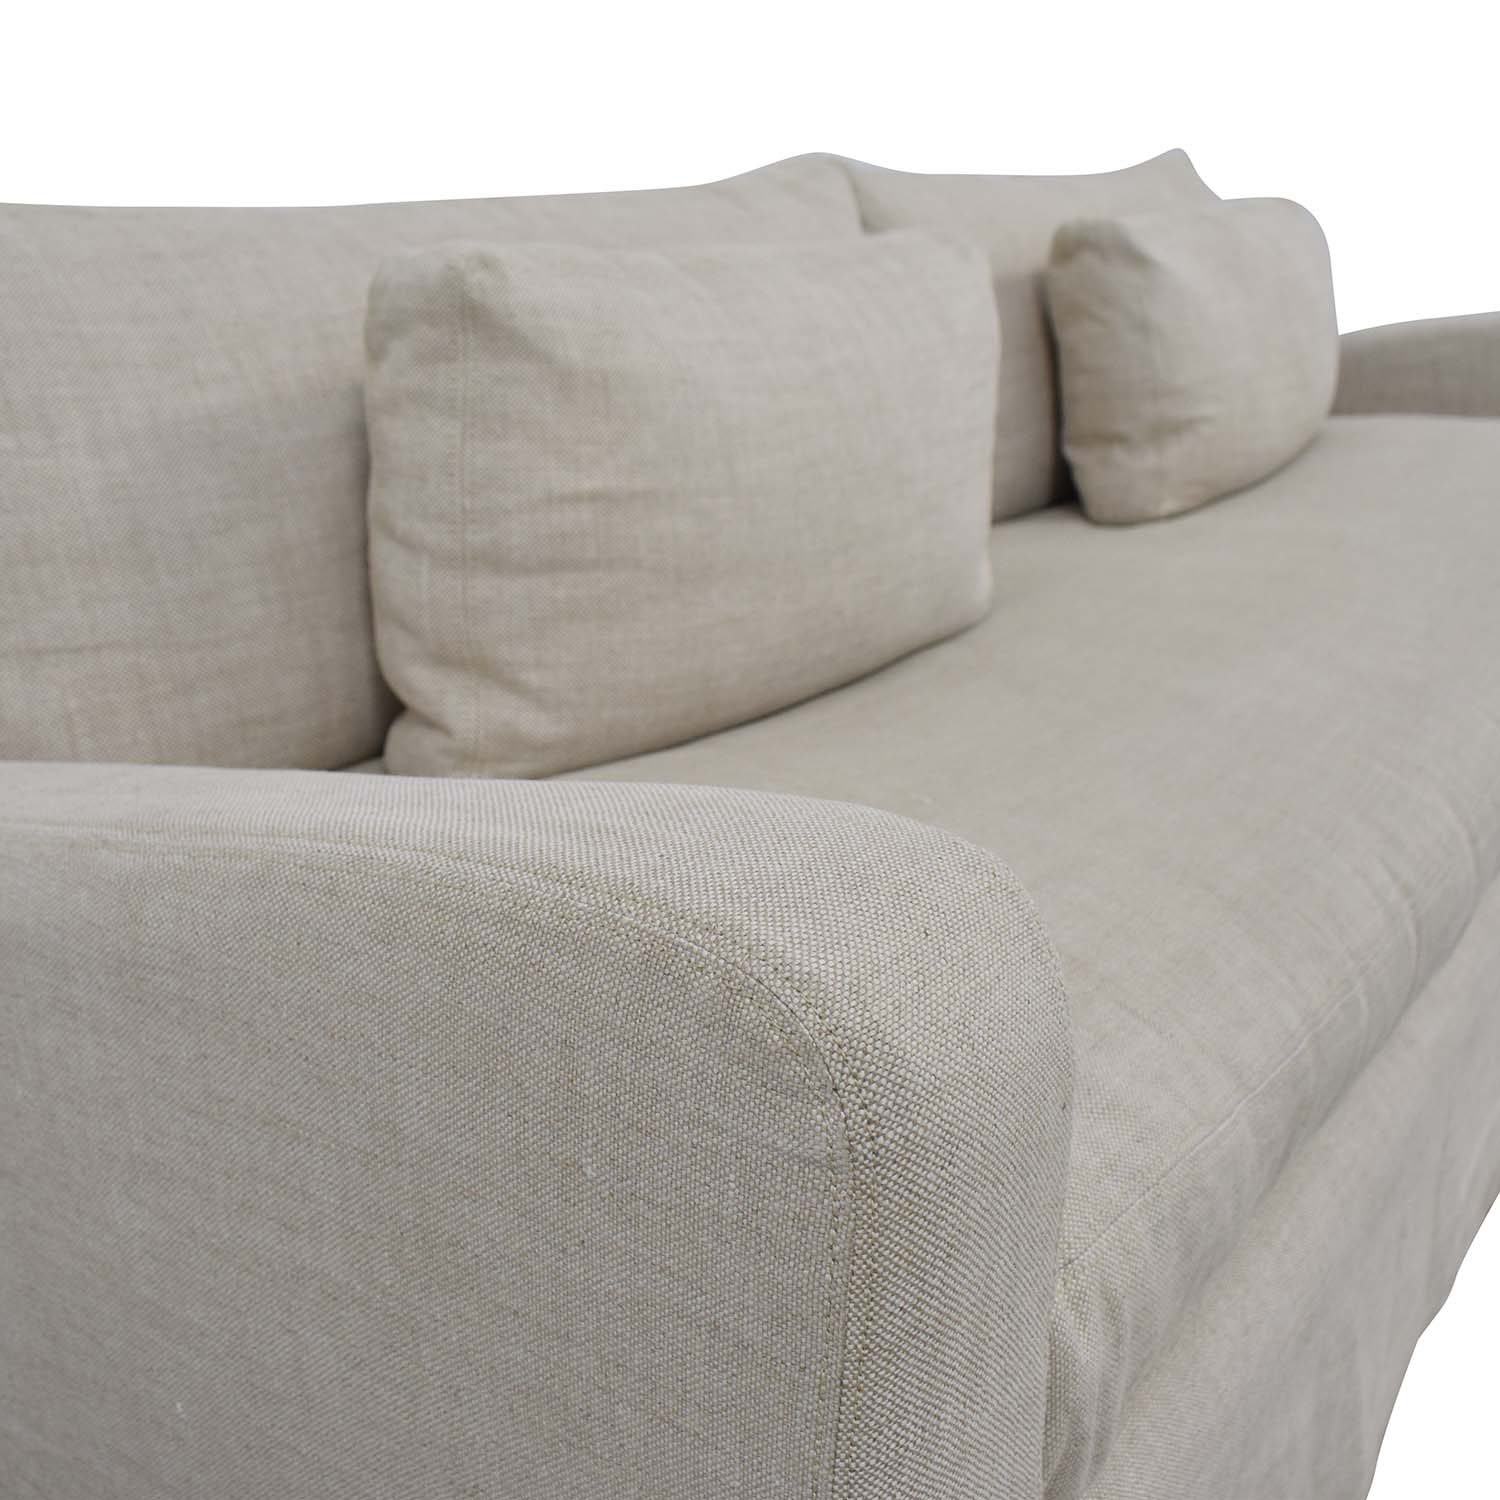 shop Restoration Hardware Belgian Track Arm Slipcovered Two-Seat Cushion Sofa Restoration Hardware Classic Sofas